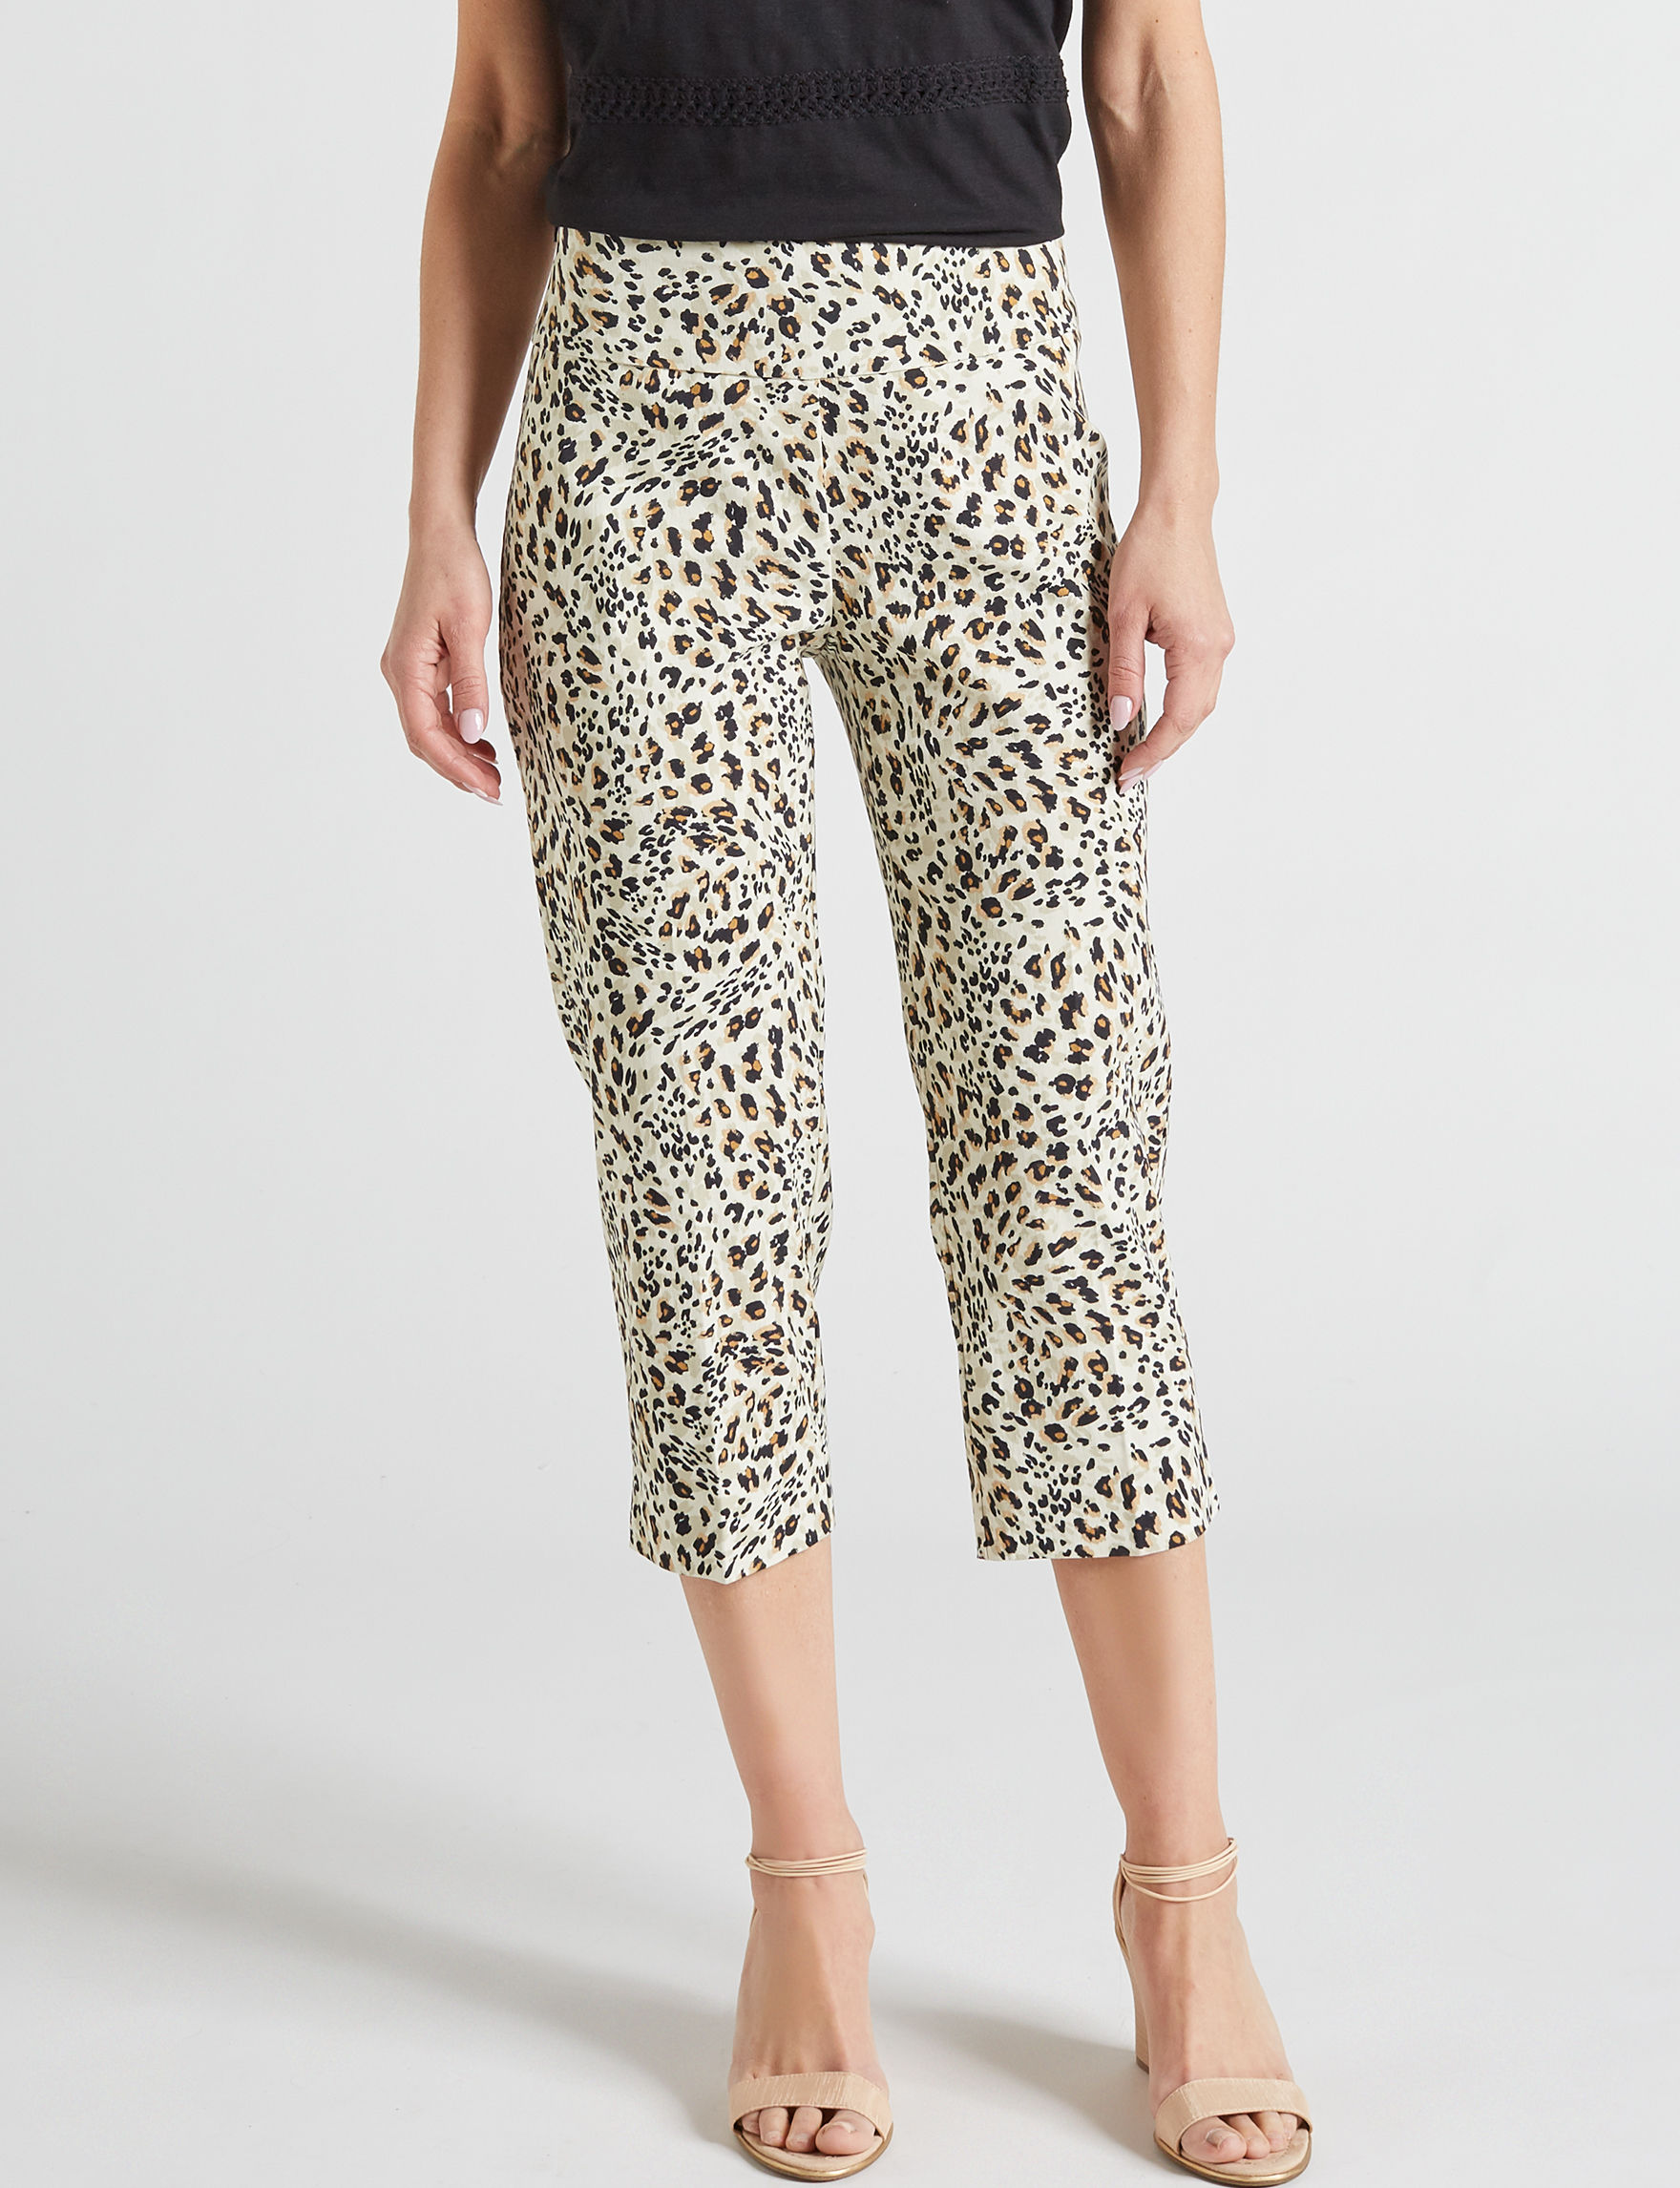 Zac & Rachel Brown Cheetah Capris & Crops